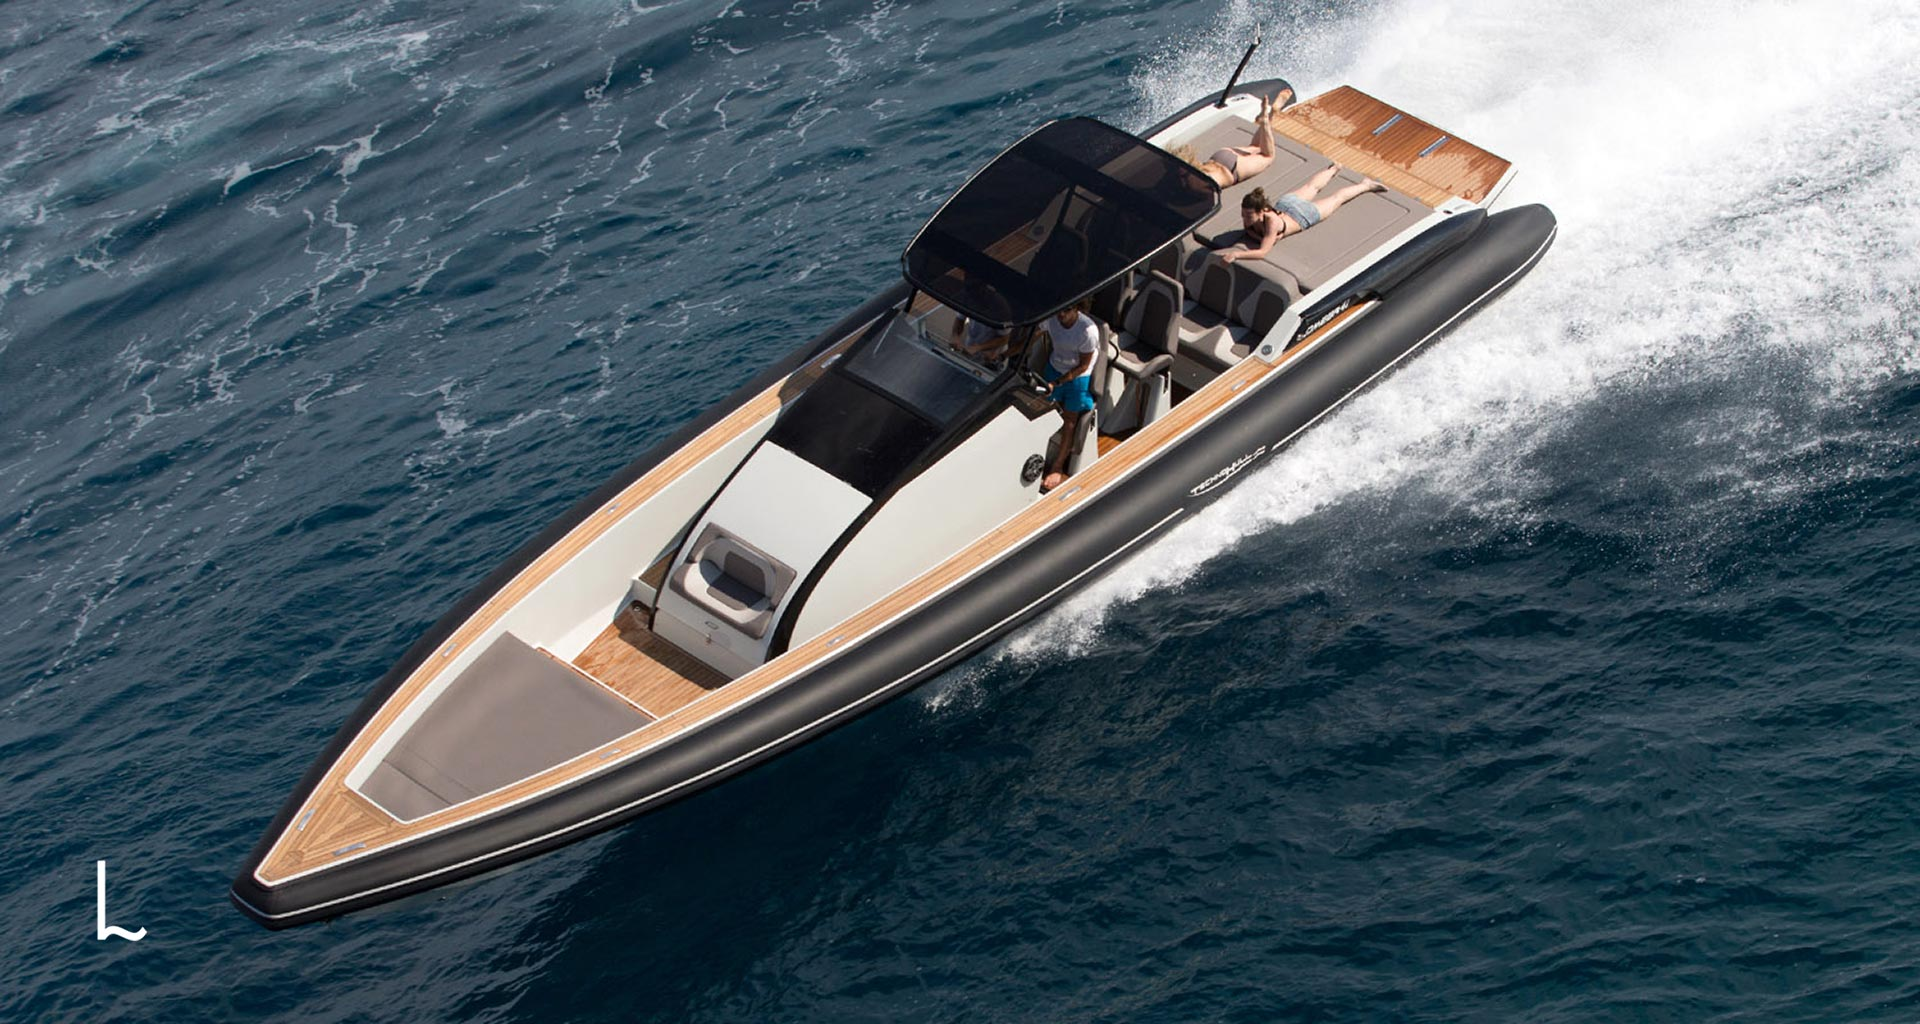 Infatable rib Omega is available for charter